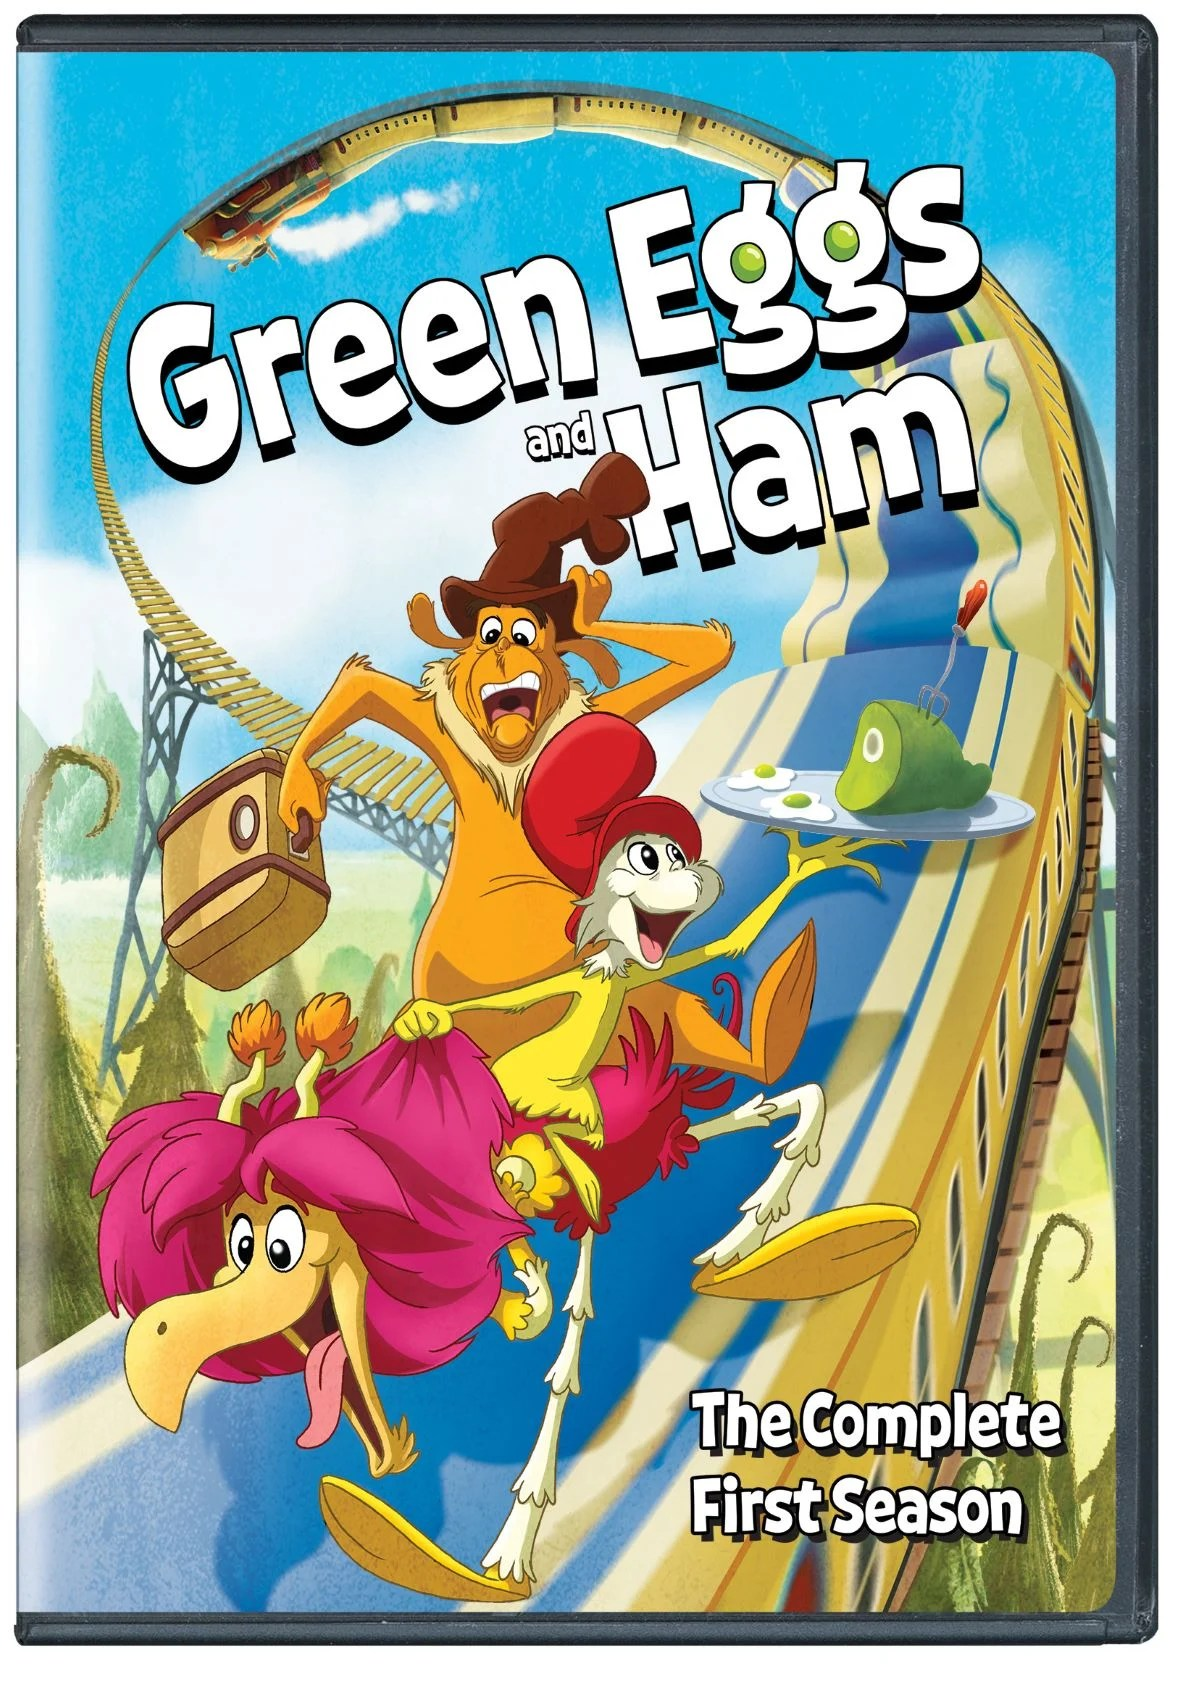 Green Eggs and Ham The Complete First Season. Prepare to go on an unforgettable adventure with Green Eggs and Ham: The Complete First Season. The animated family comedy series from Netflix will become available on DVD December 1rst, 2020, and on digital November 10th.